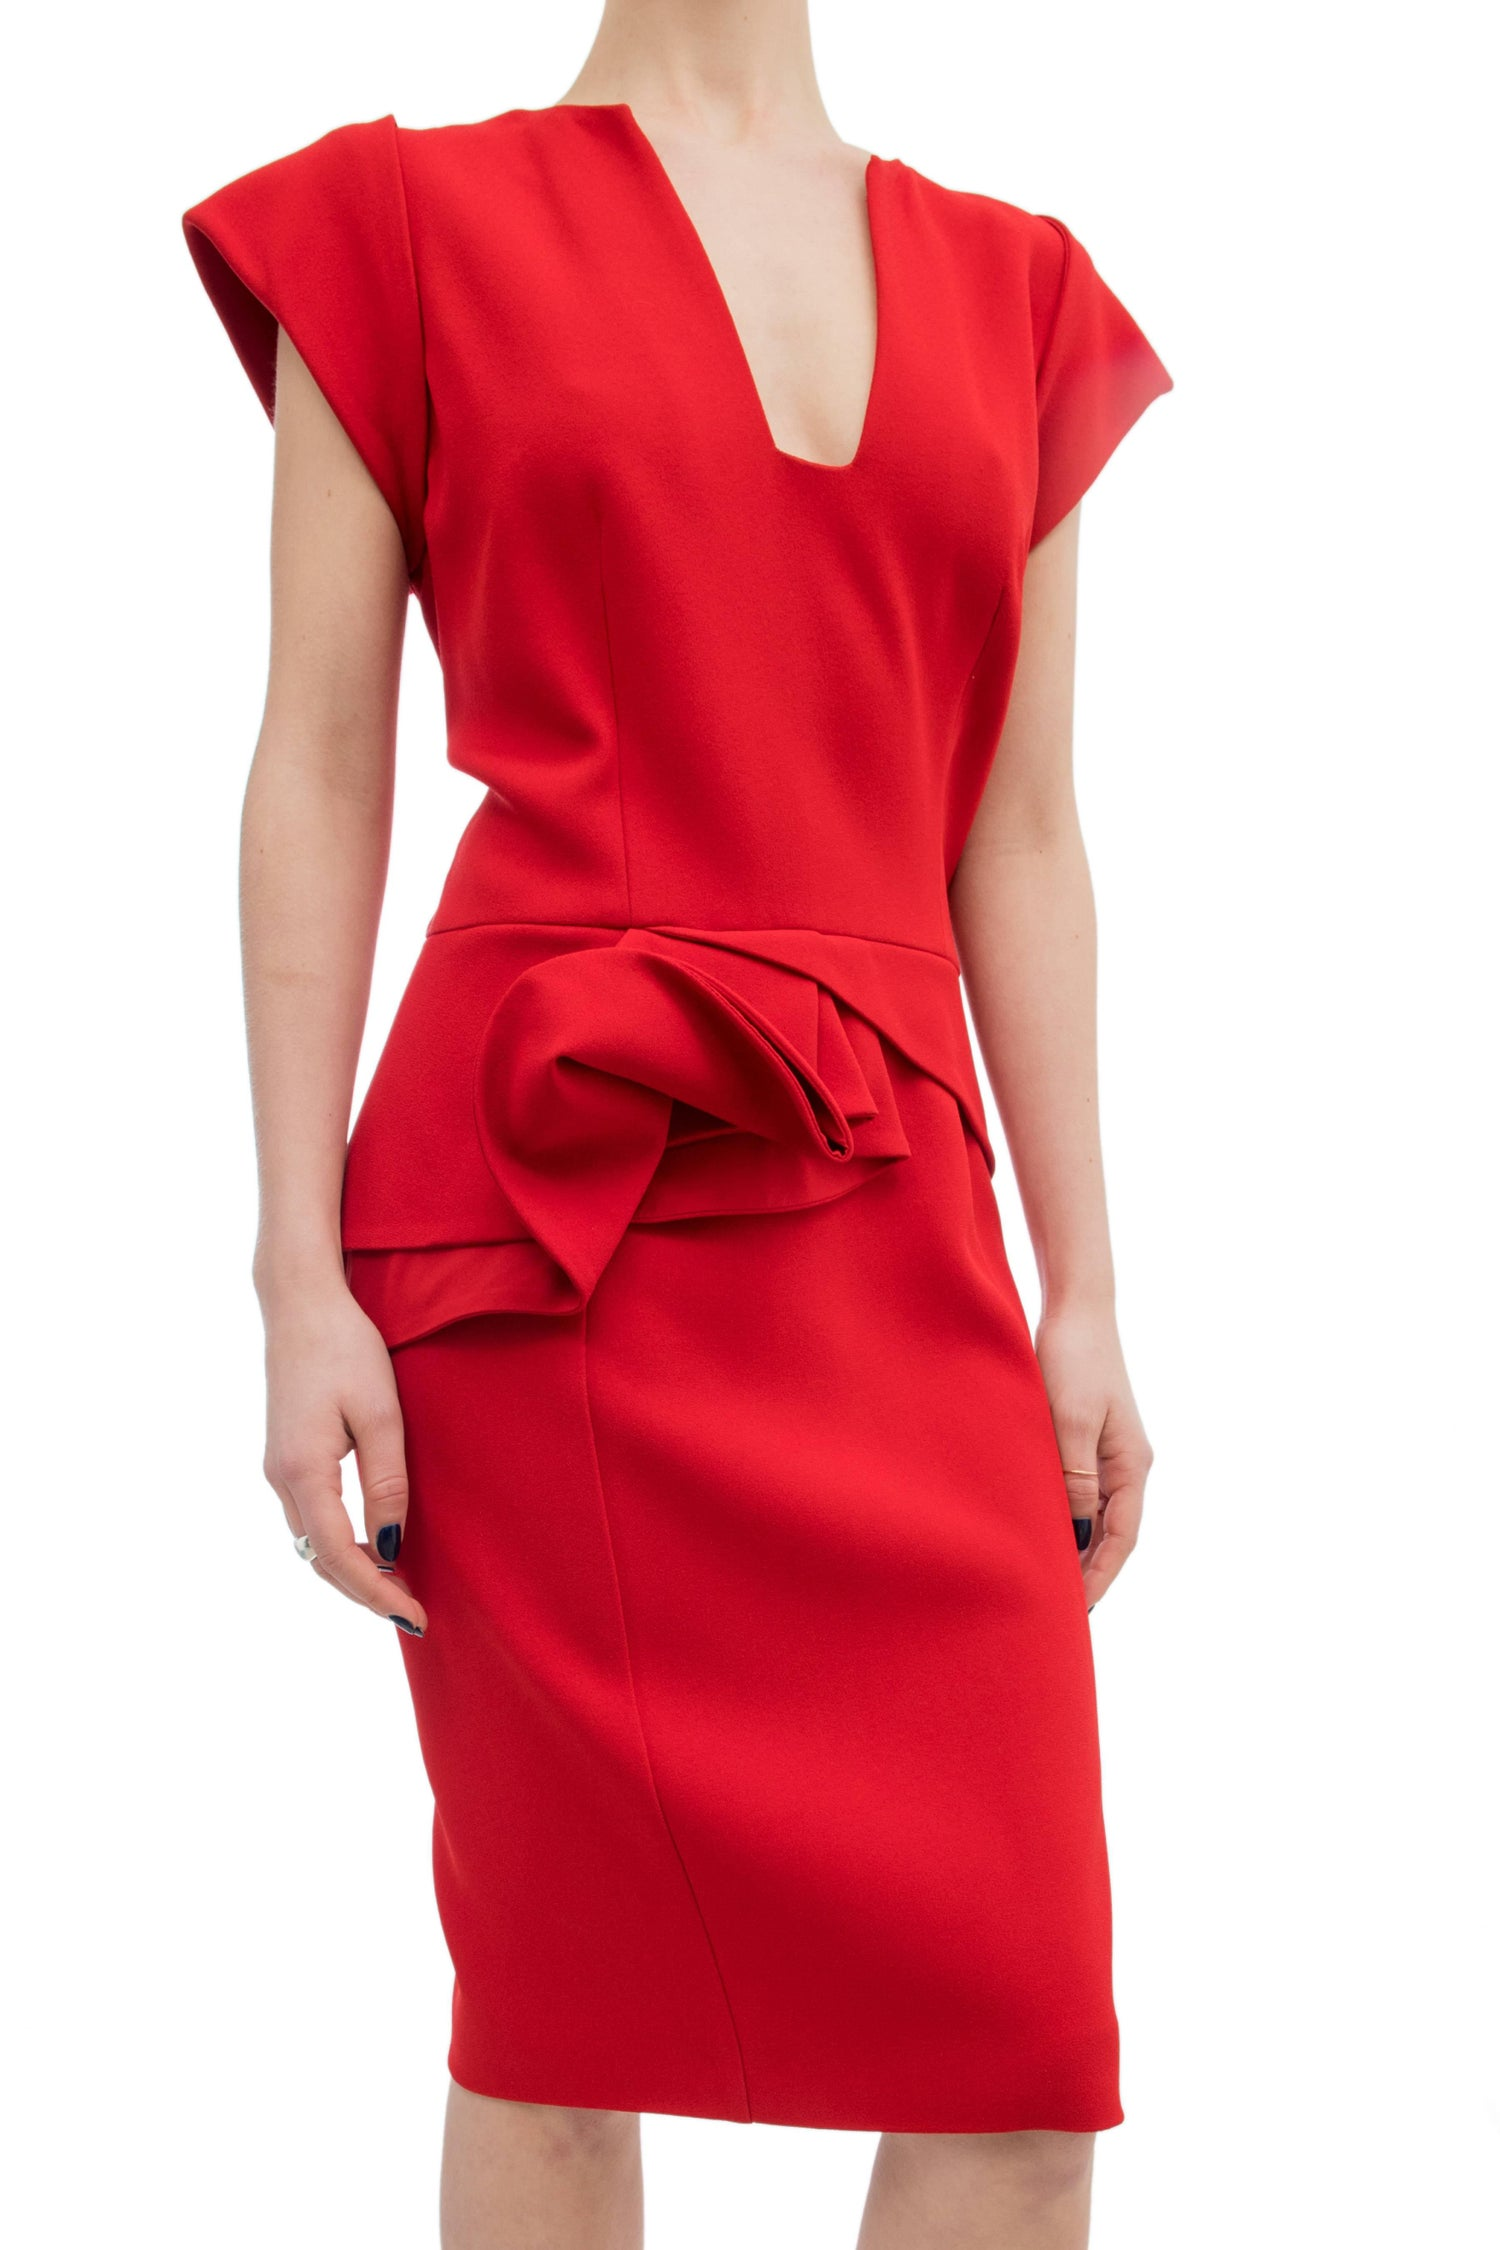 Elie Saab Red Cocktail Dress with Gathered Waist For Sale at 1stdibs